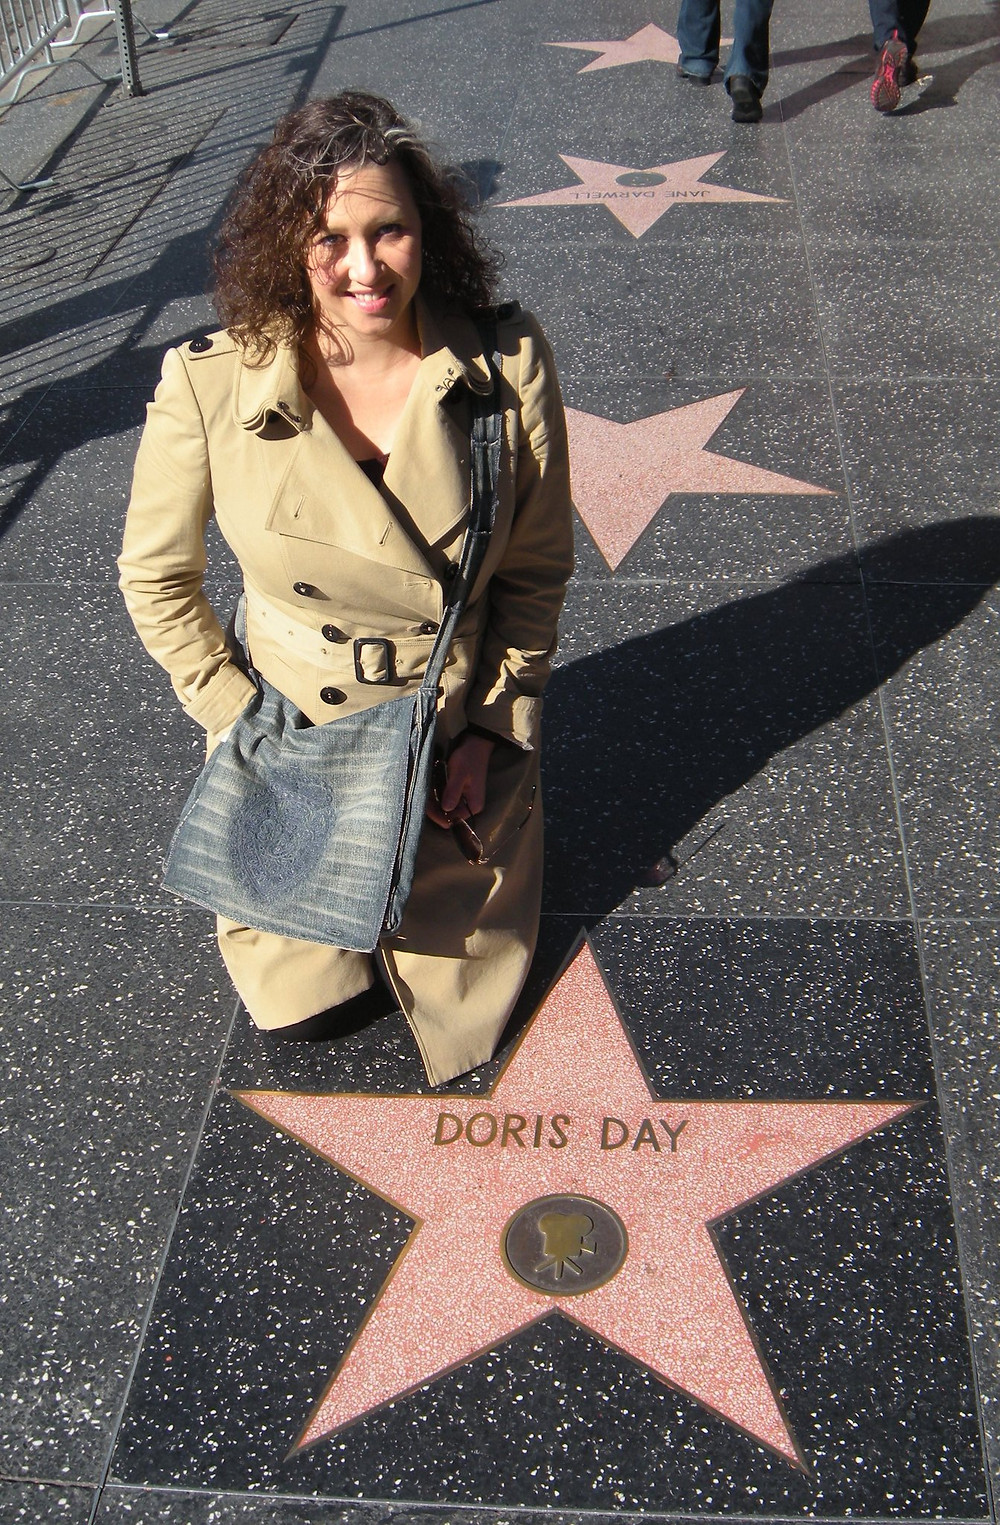 Doris Day's Star Hollywood Walk of Fame